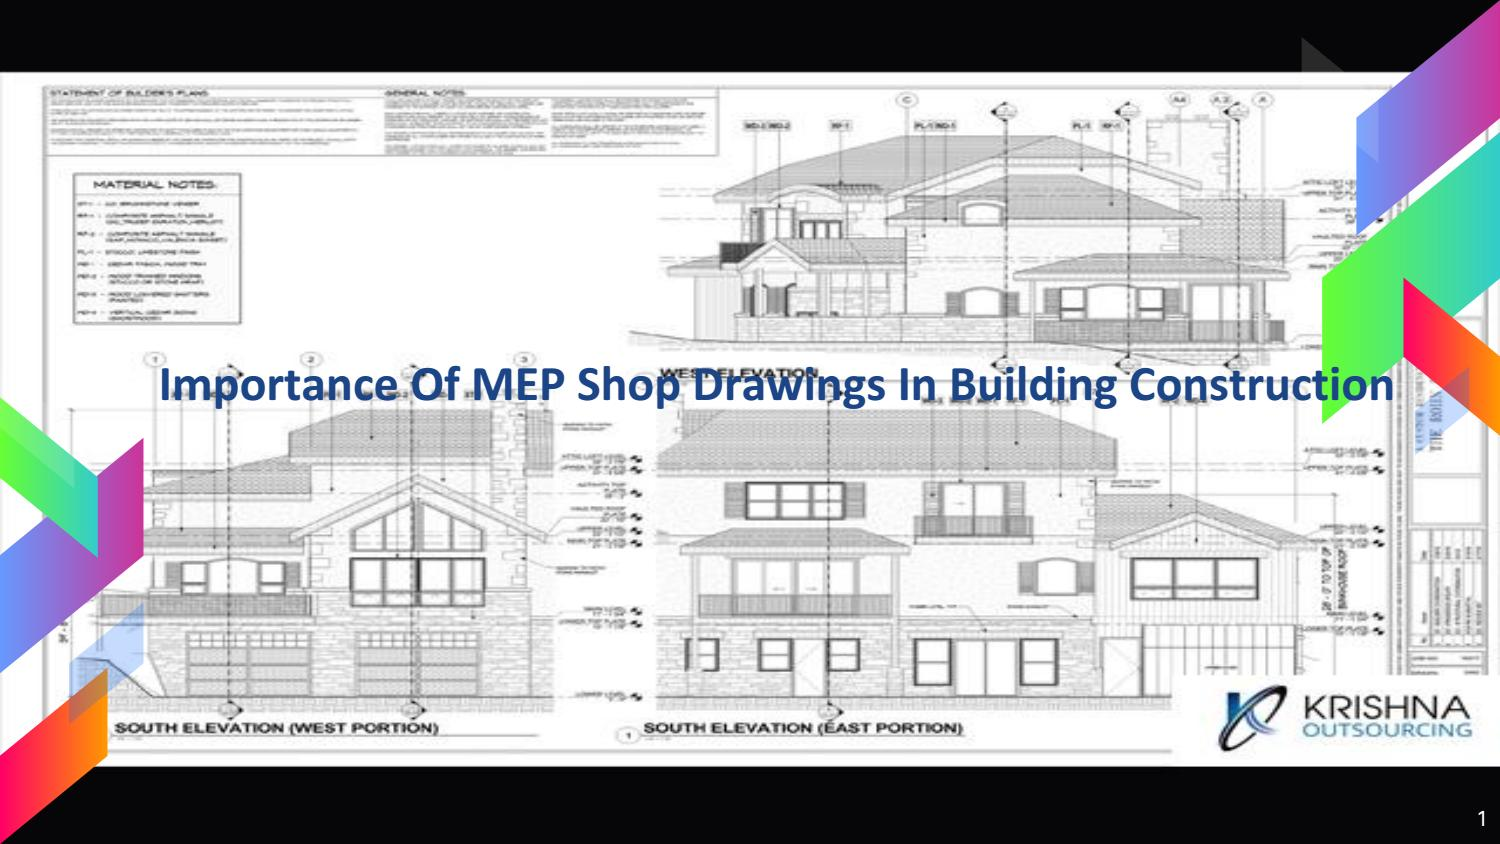 Importance Of MEP Shop Drawings In Building Construction by